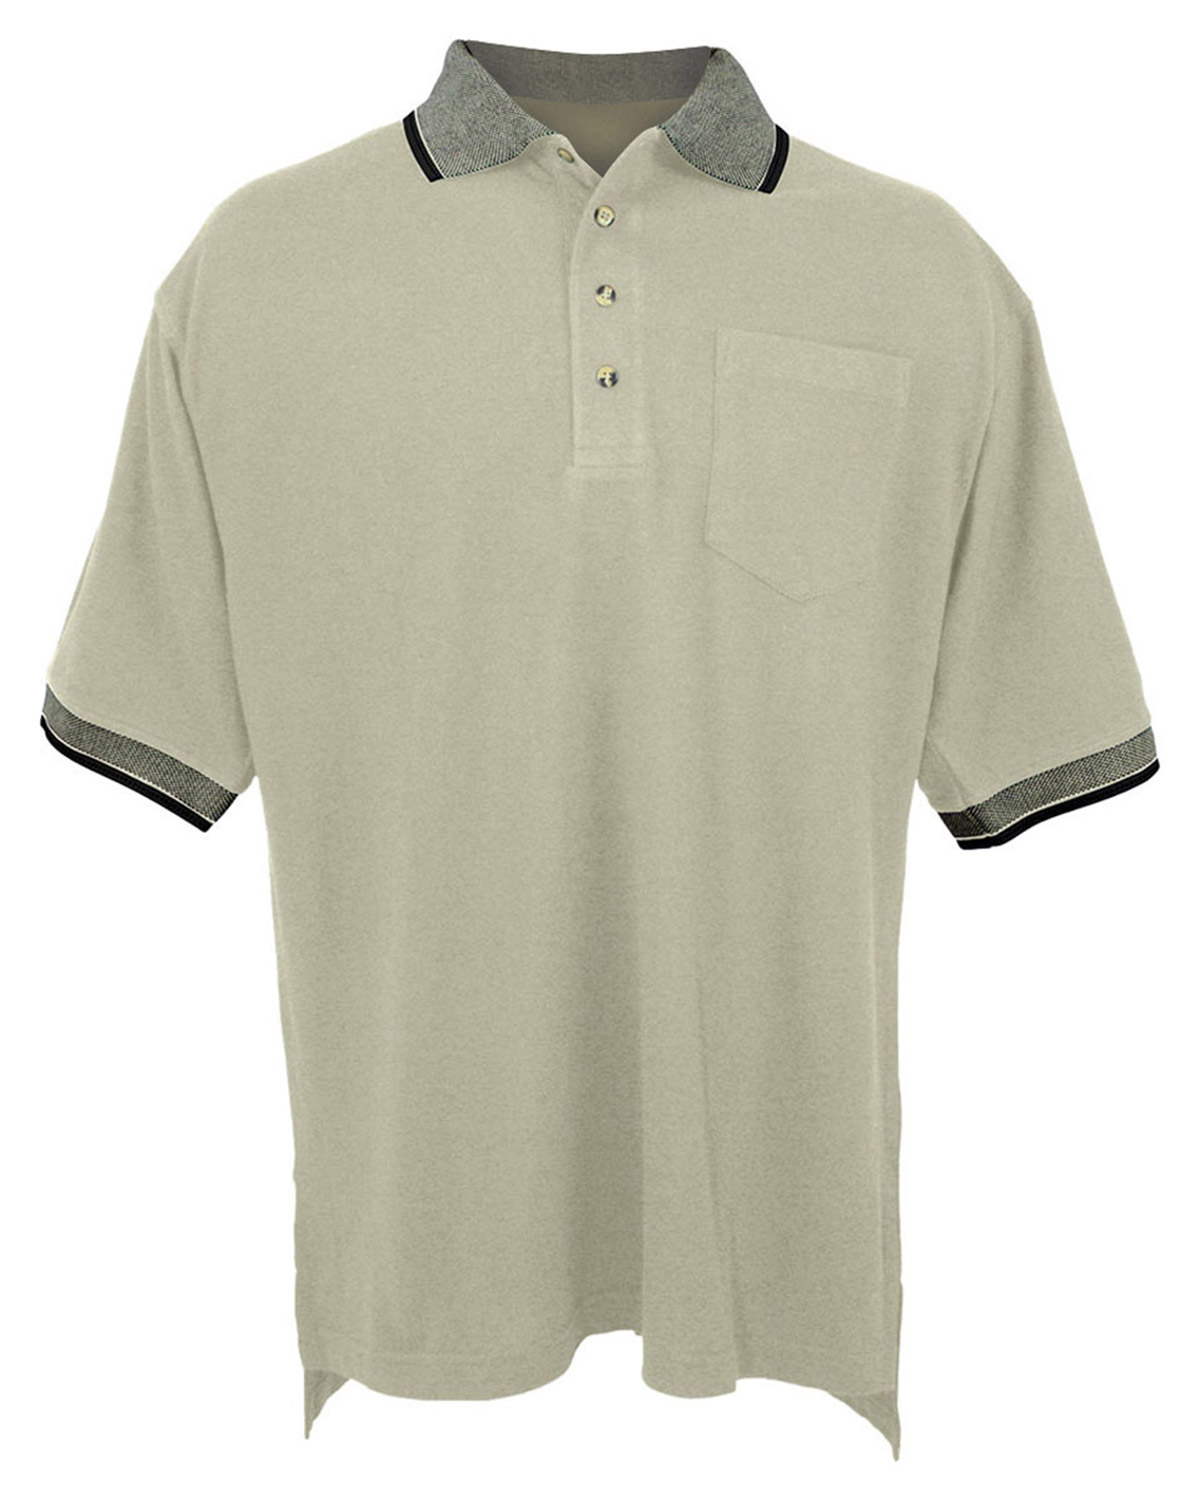 tri mountain pique pocketed polo golf shirt with jacquard